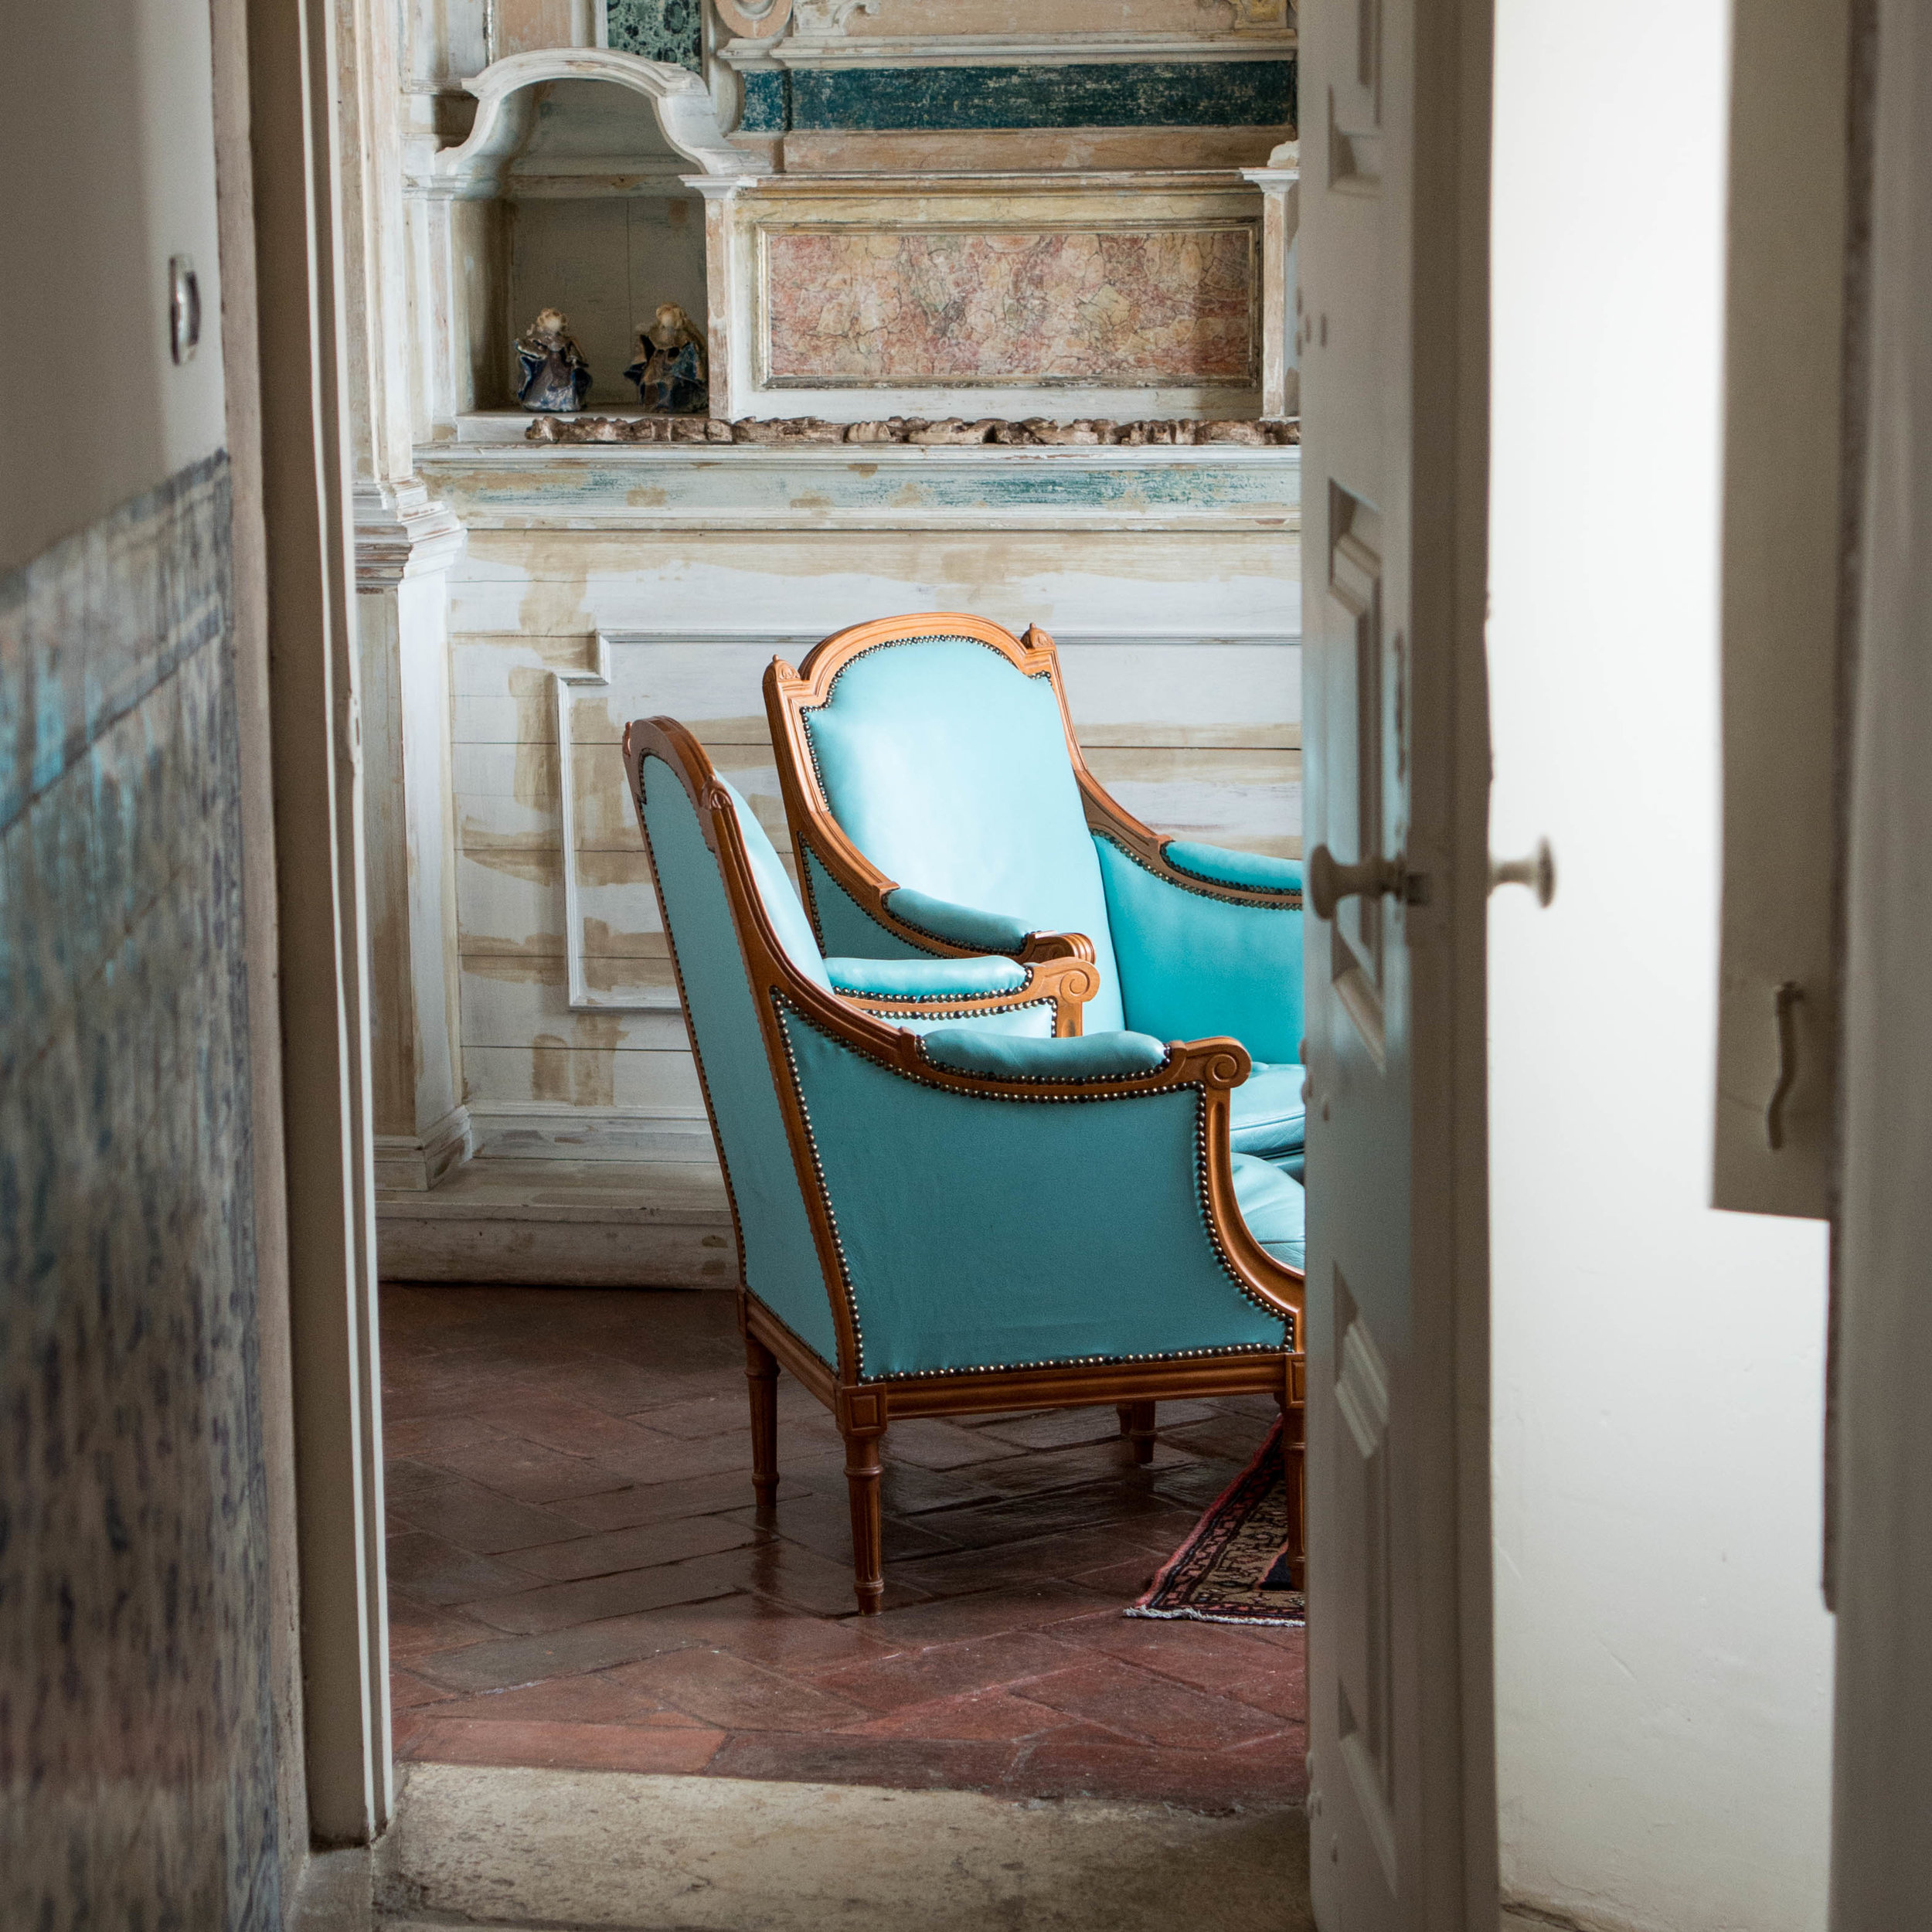 SITTING ROOMS - Sit in silence and beauty from the vantage of more than 380 windows and doors offering glimpses of urban landscape and the ports that brought the Portuguese explorer fame during the Age of Discovery.